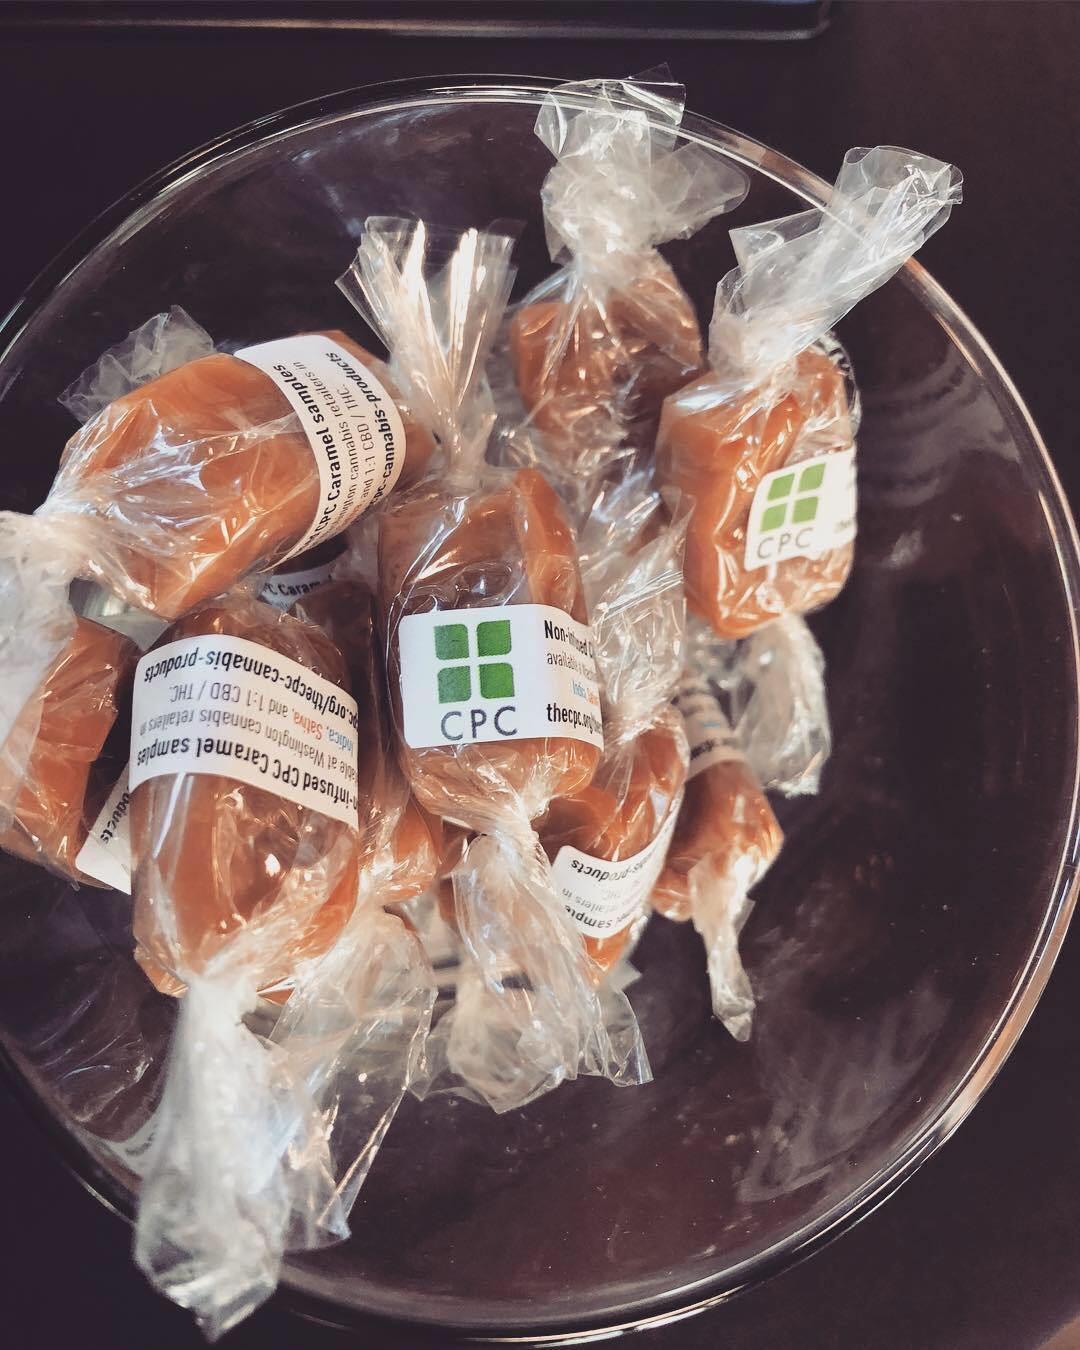 CPC caramels ($10) - Two delicious, creamy, buttery caramels for $10 make the perfect stocking stuffer.